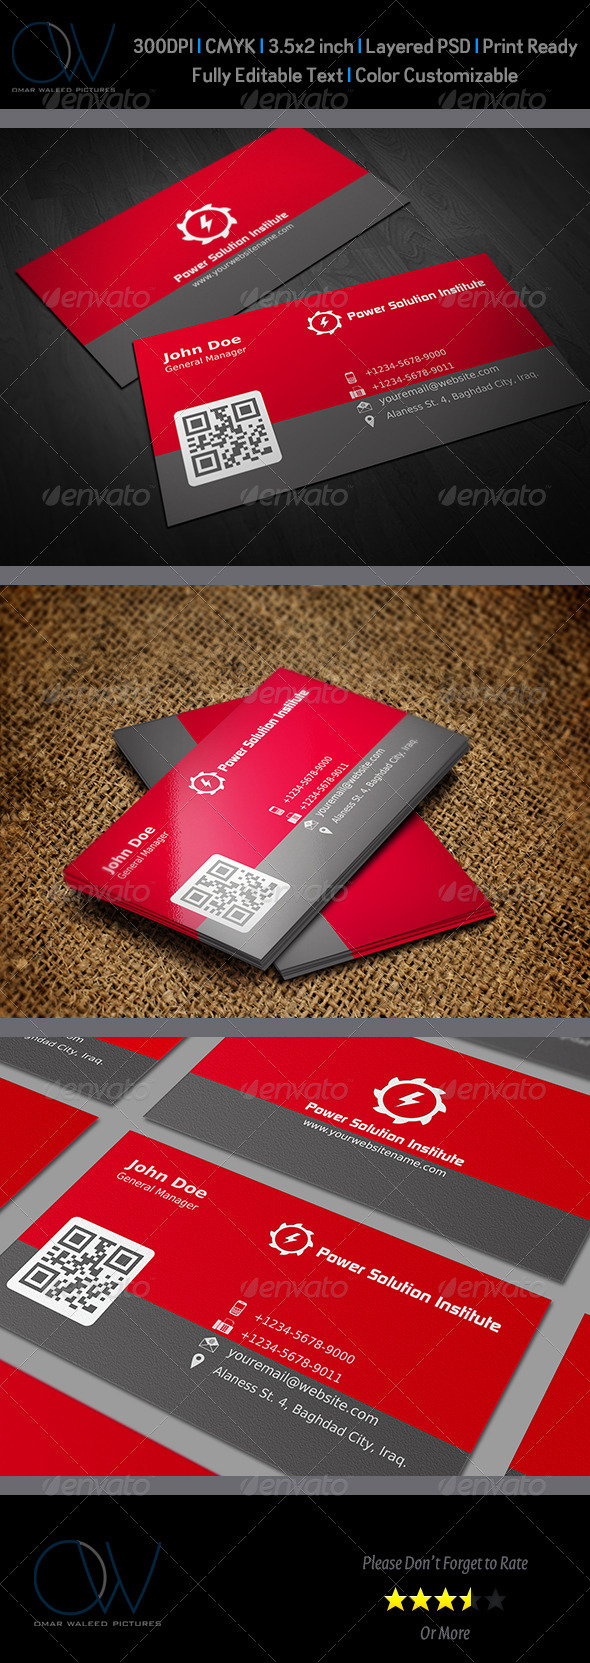 Corporate Business Card Vol.6 - Corporate Business Cards